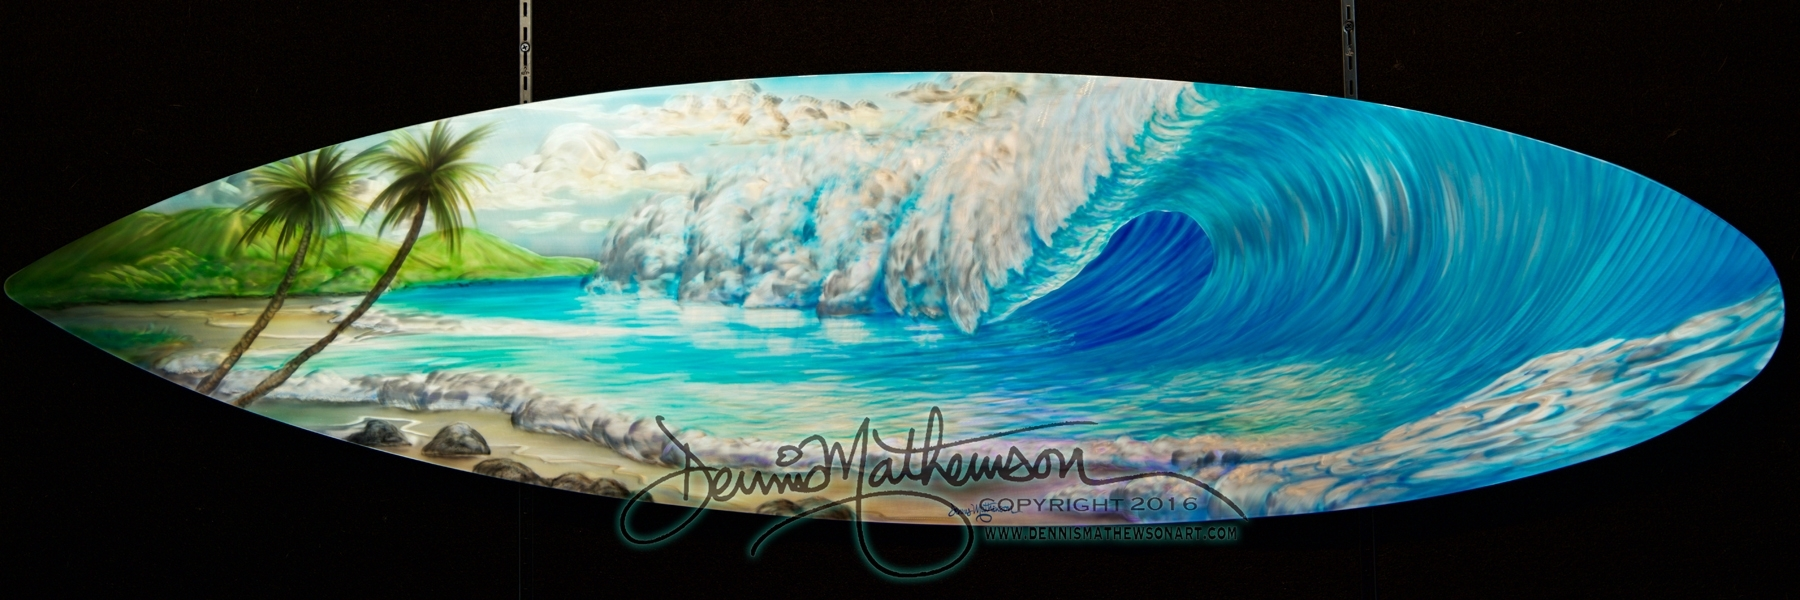 Surfboard Wave #16 – Dennis Mathewson Art For Most Recent Surfboard Wall Art (View 16 of 20)